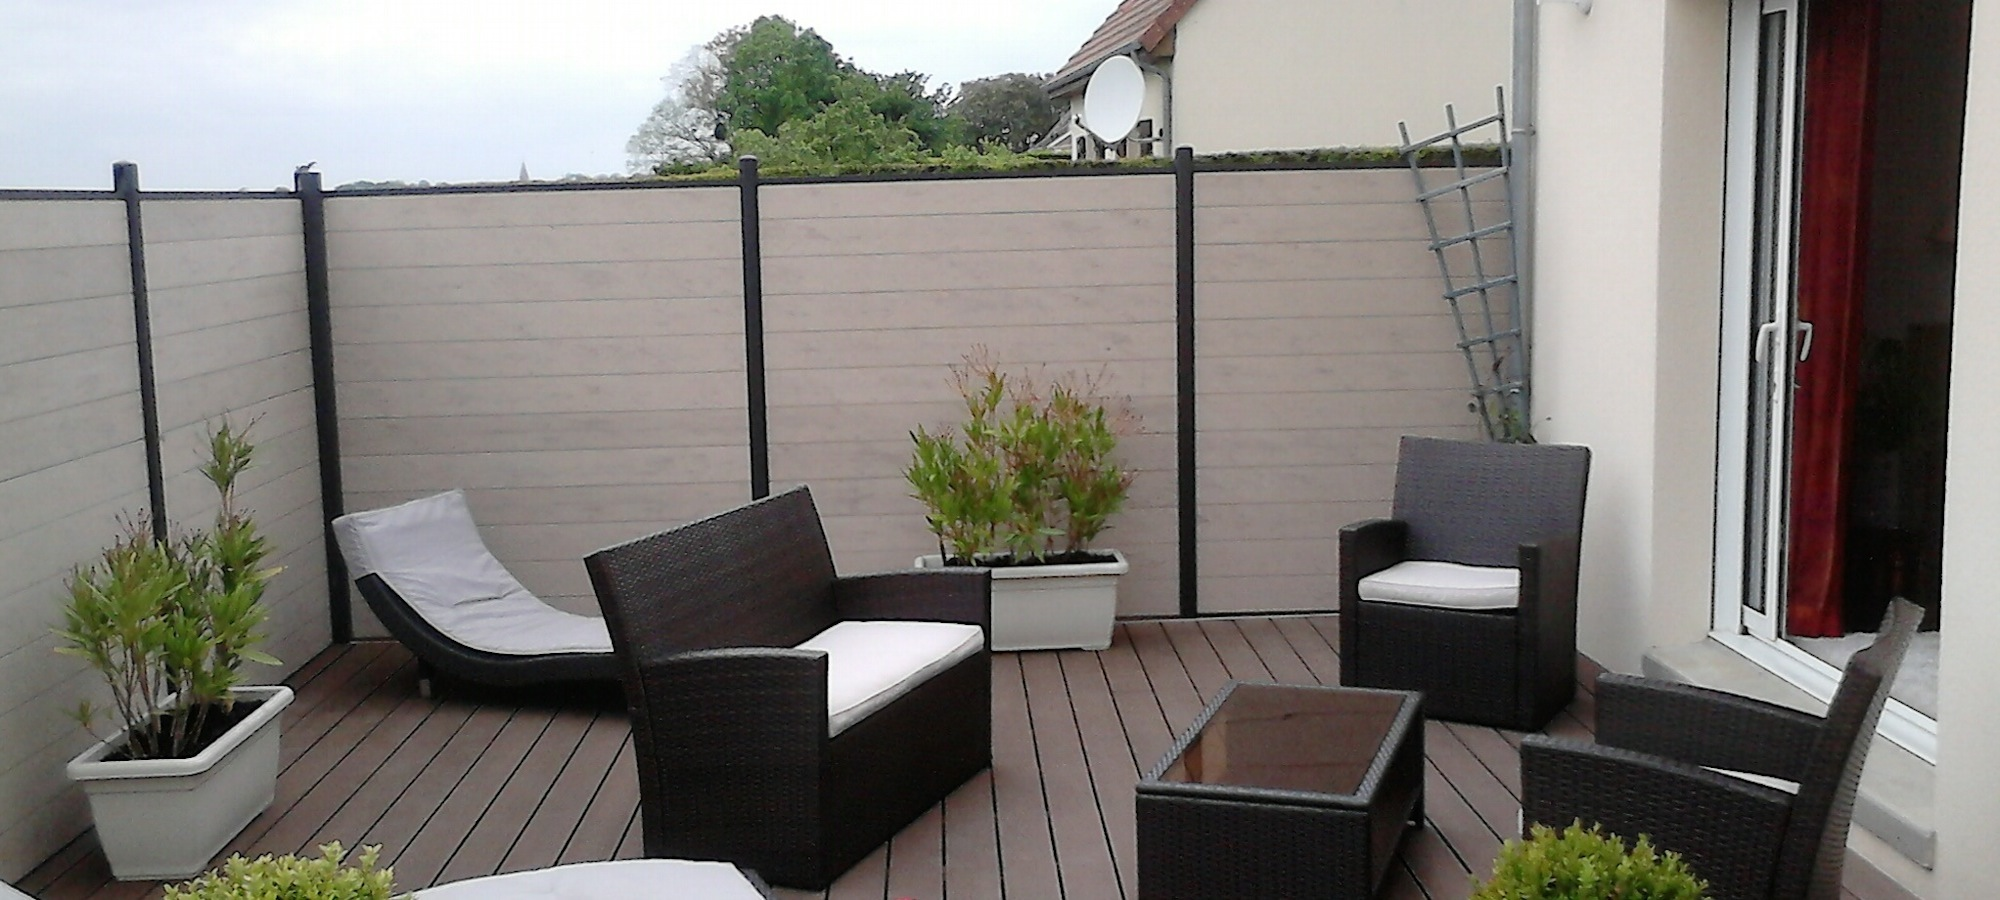 terrasse bois composite prix belgique nos conseils. Black Bedroom Furniture Sets. Home Design Ideas